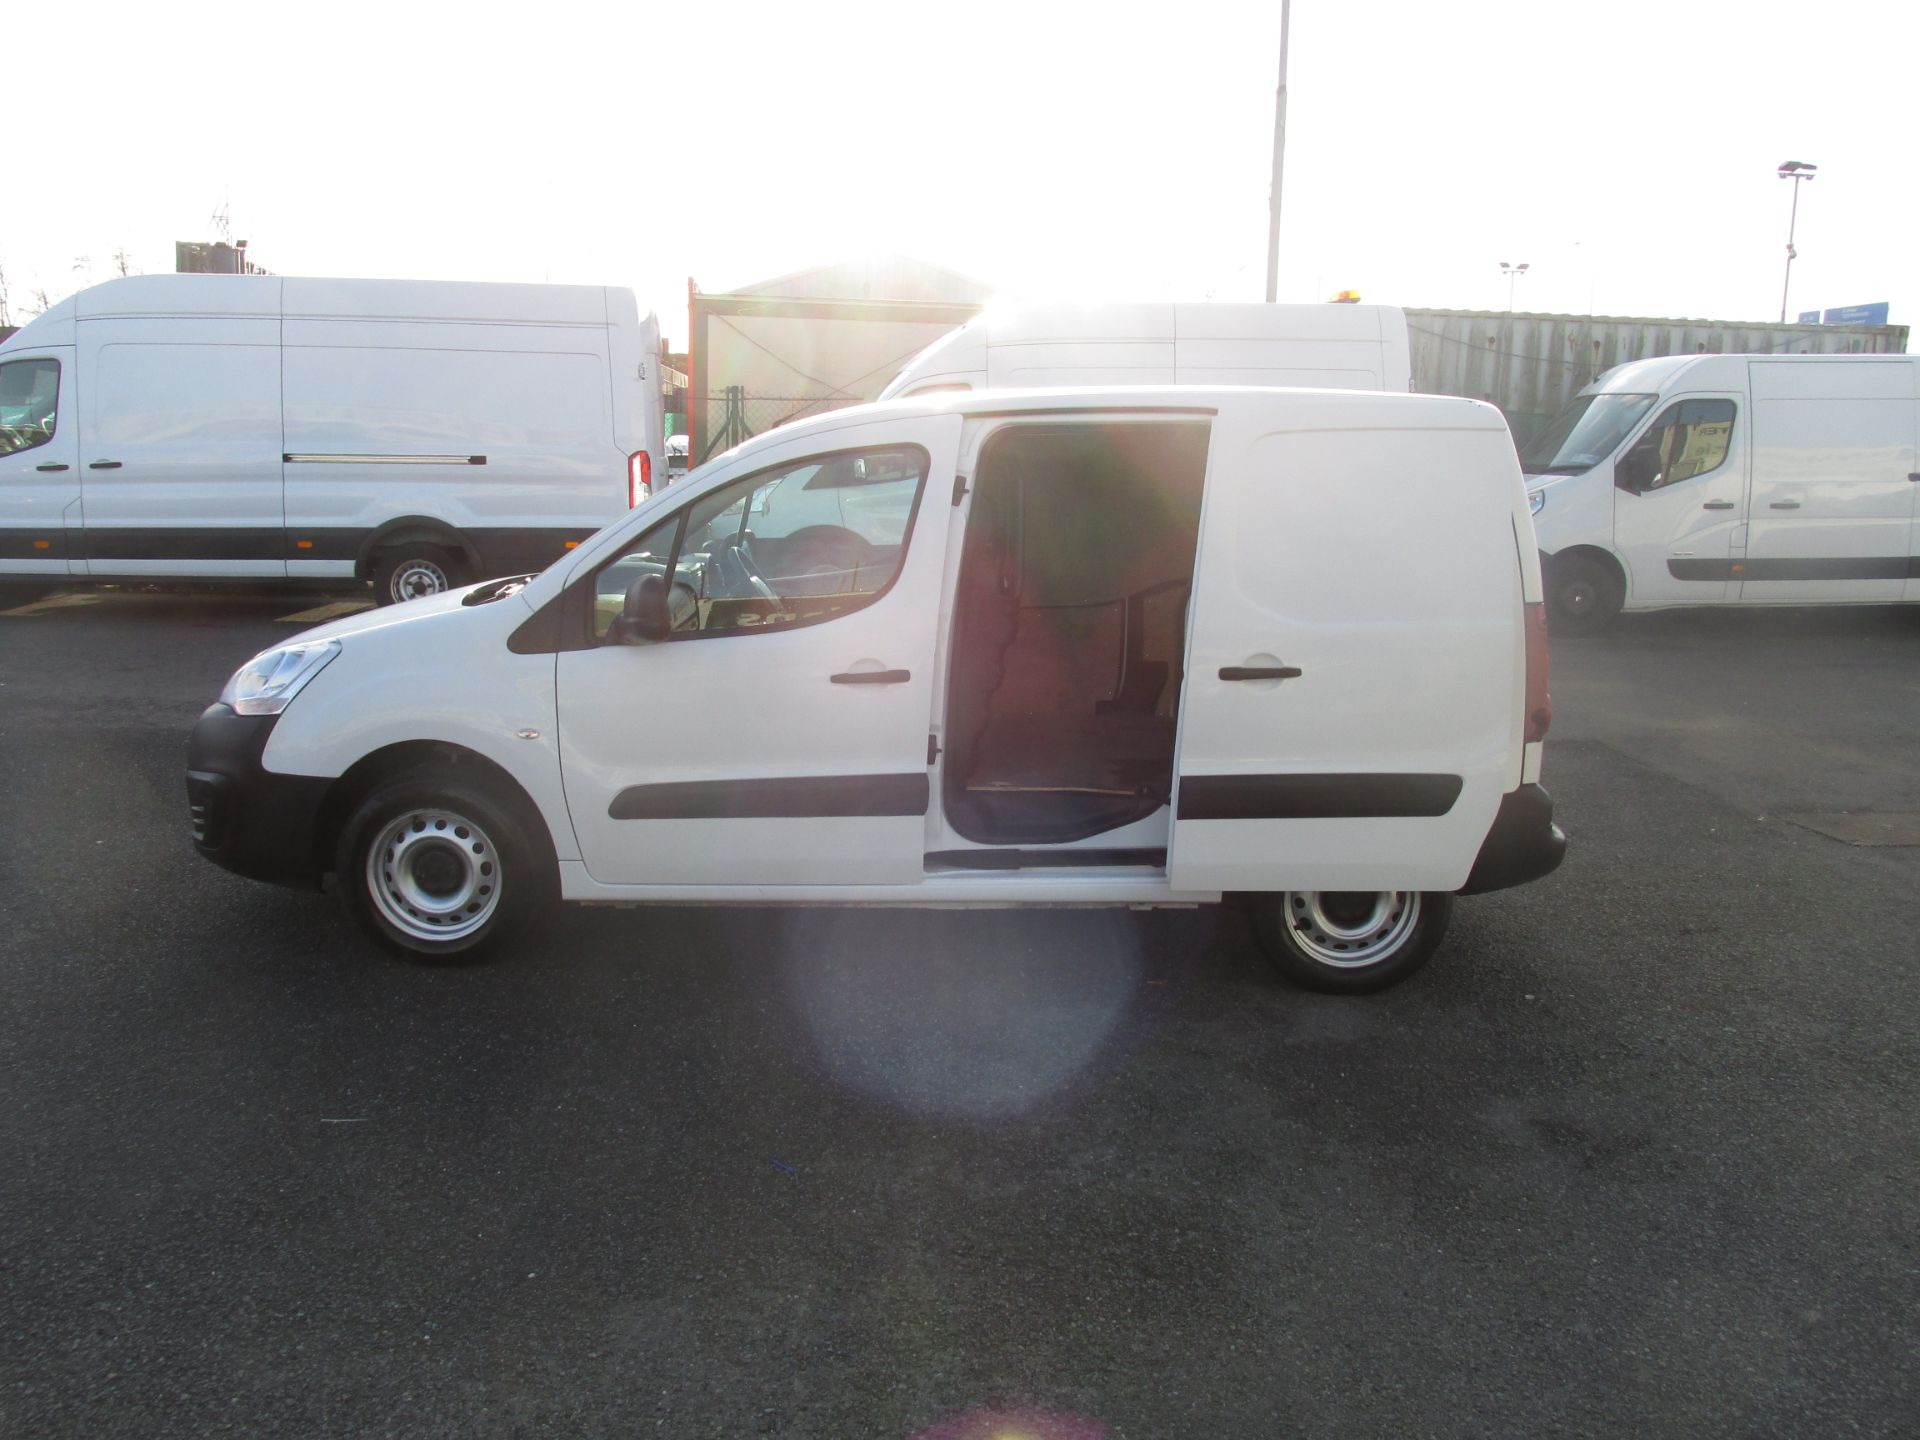 2016 Peugeot Partner #150 VANS TO VIEW IN SANTRY # (162D16363) Image 8